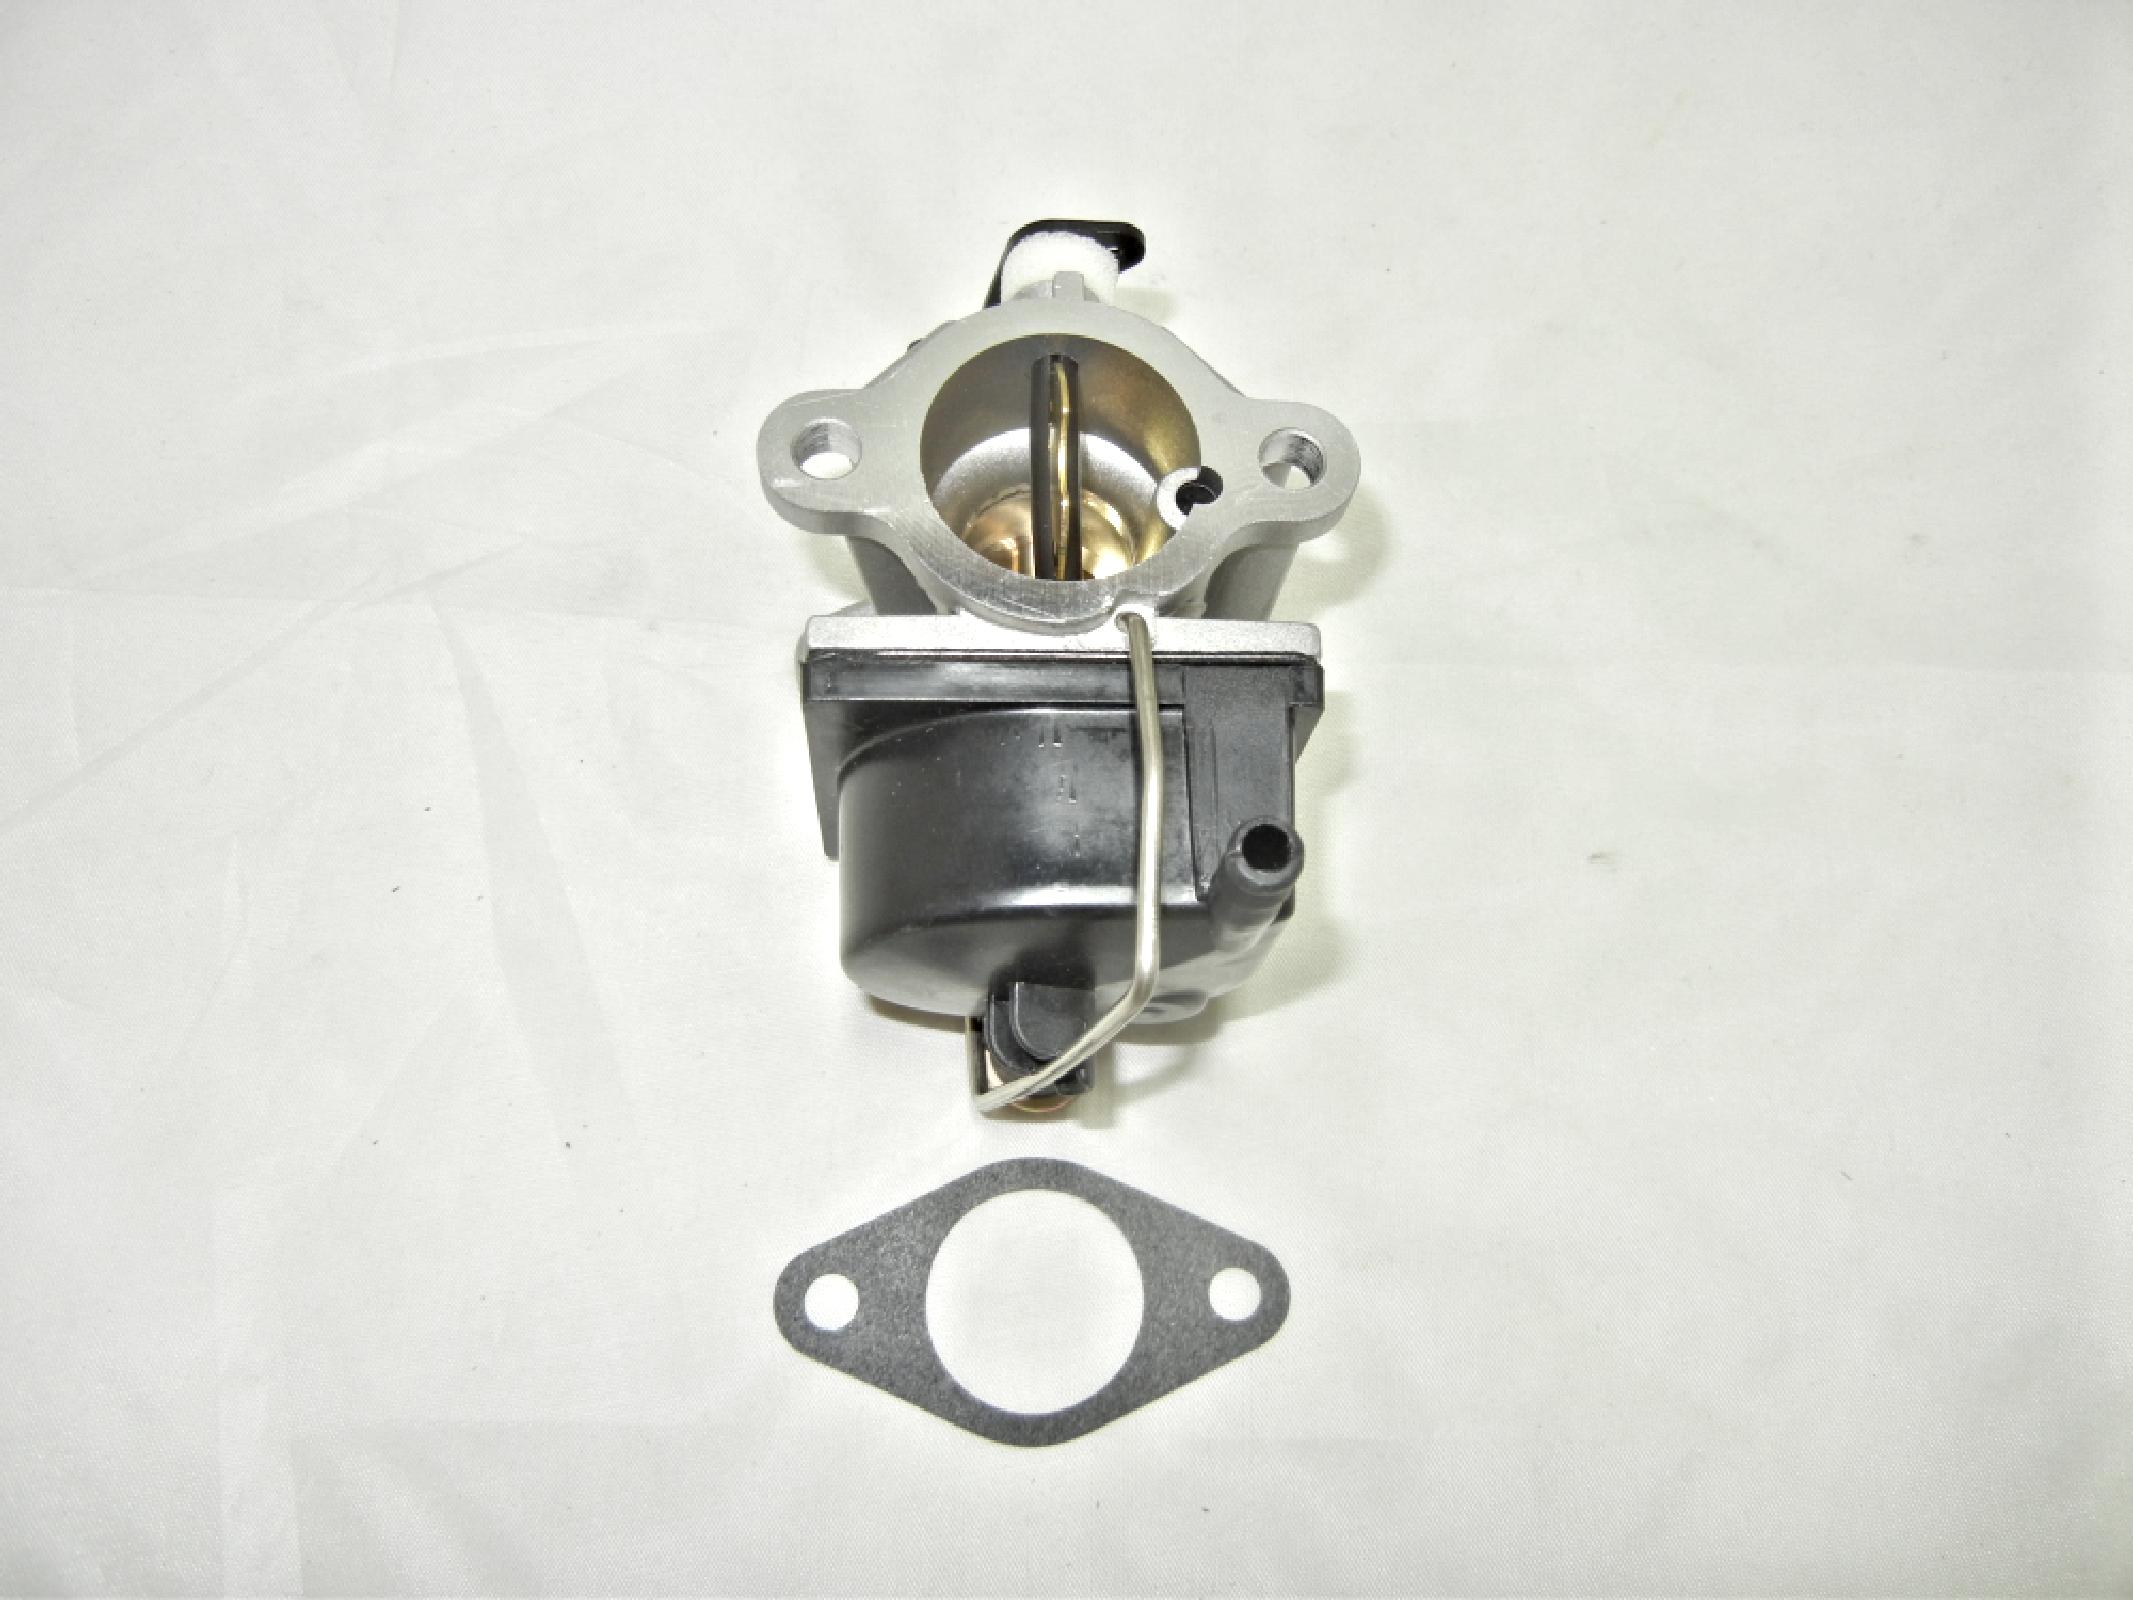 Replacement carburetor for Tecumseh 640065, 640065A: Fits mod